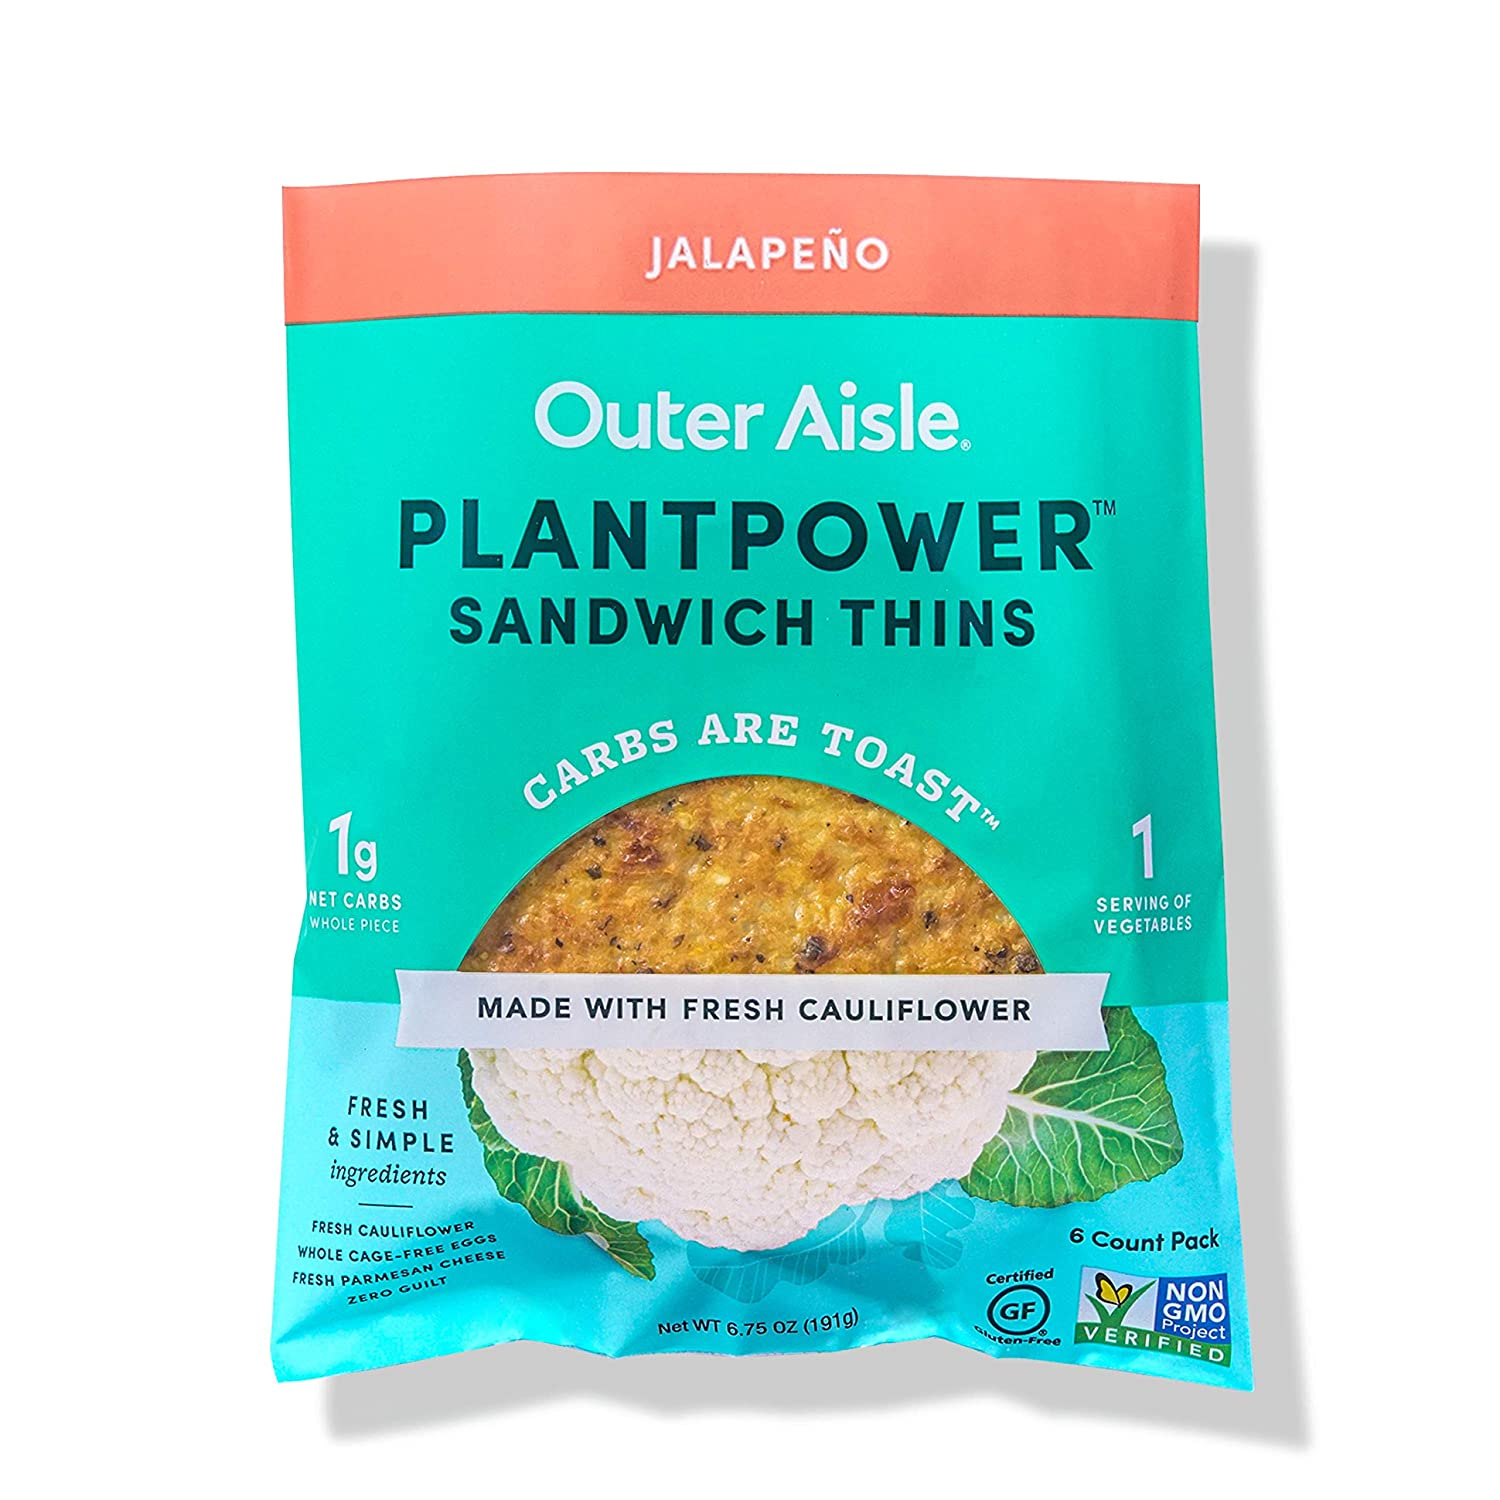 Outer Aisle Gourmet Cauliflower Sandwich Thins | Keto, Gluten Free, Low Carb & Paleo | Jalapeno | 24 Sandwich Thins